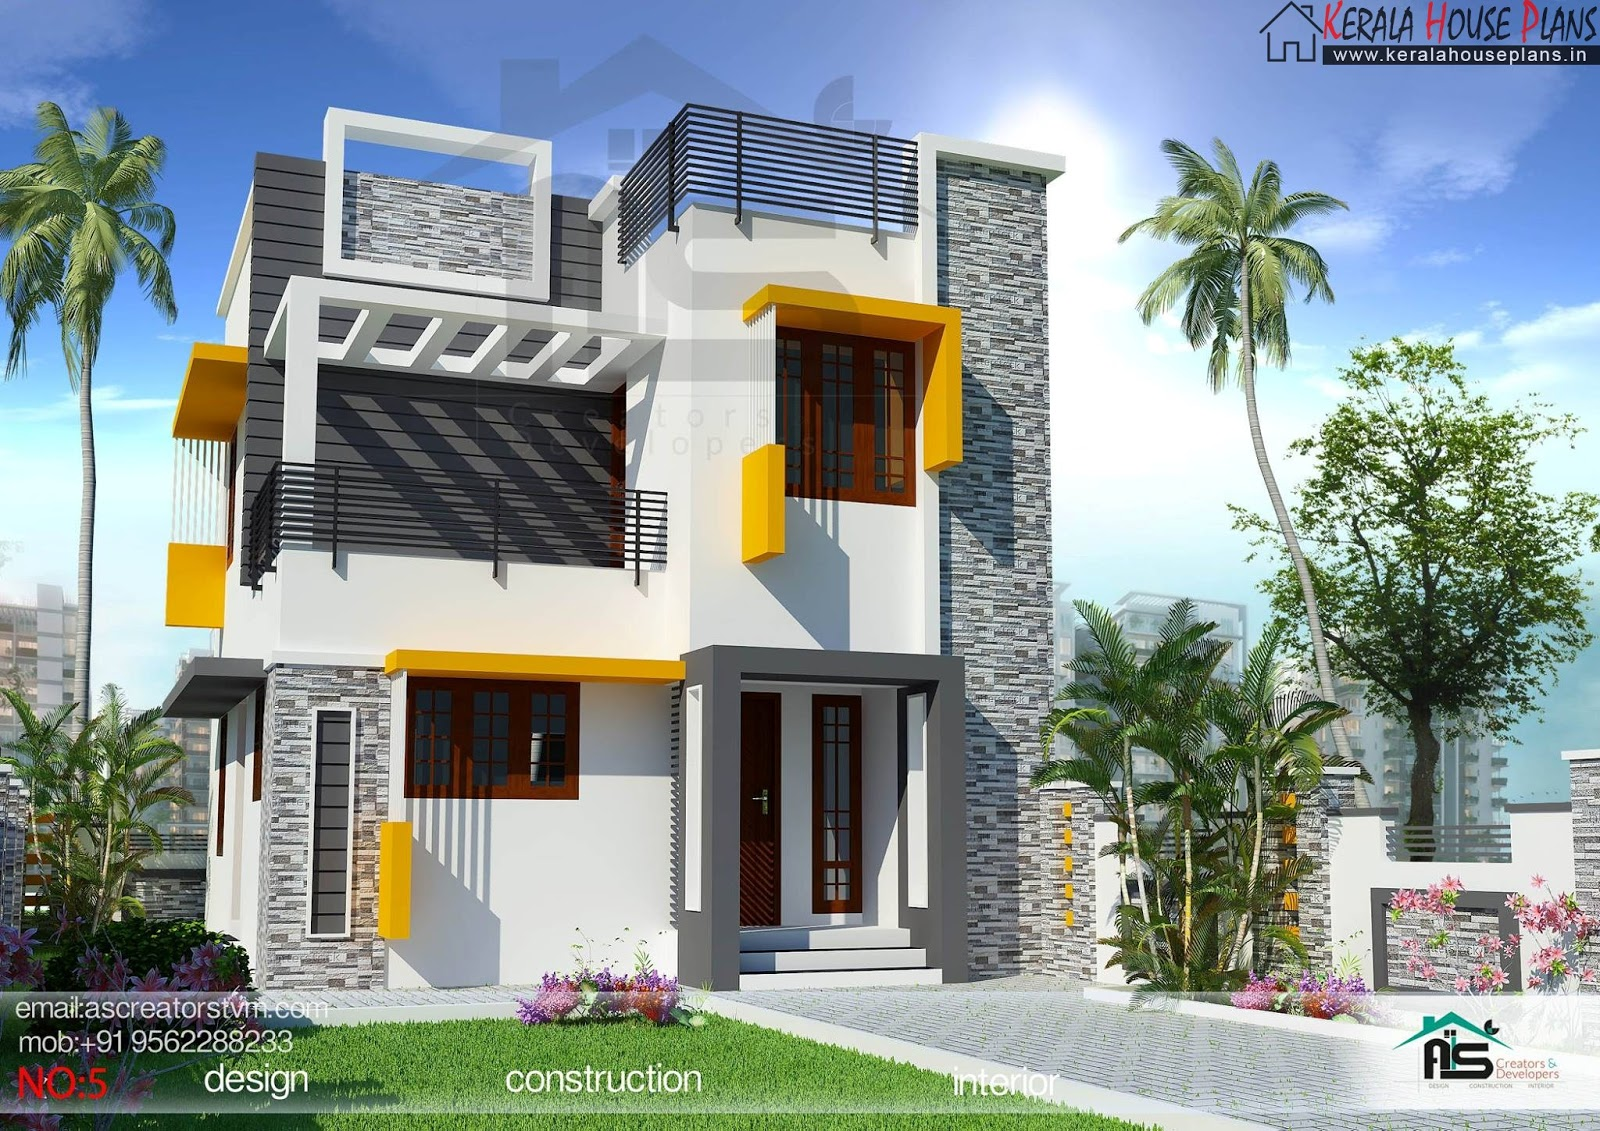 Three bedroom house plan kerala style kerala house plans for 3 bedroom house plan kerala